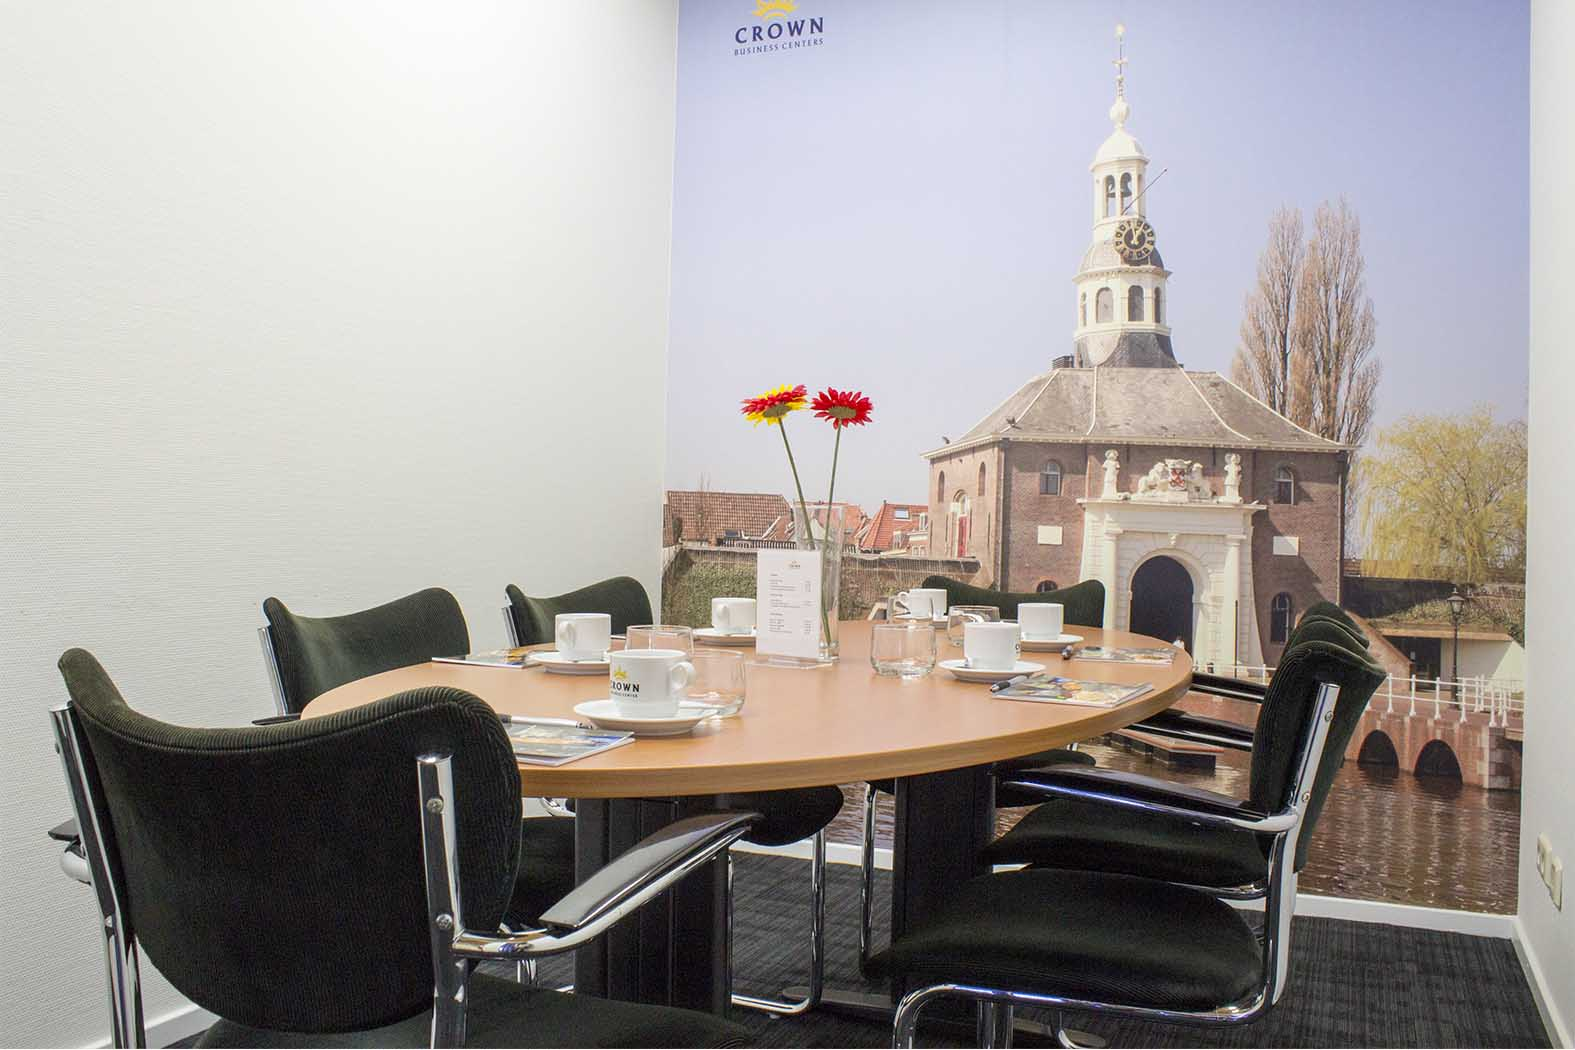 Vergaderen in Haarlem | Crown Business Center | Office & Meetings